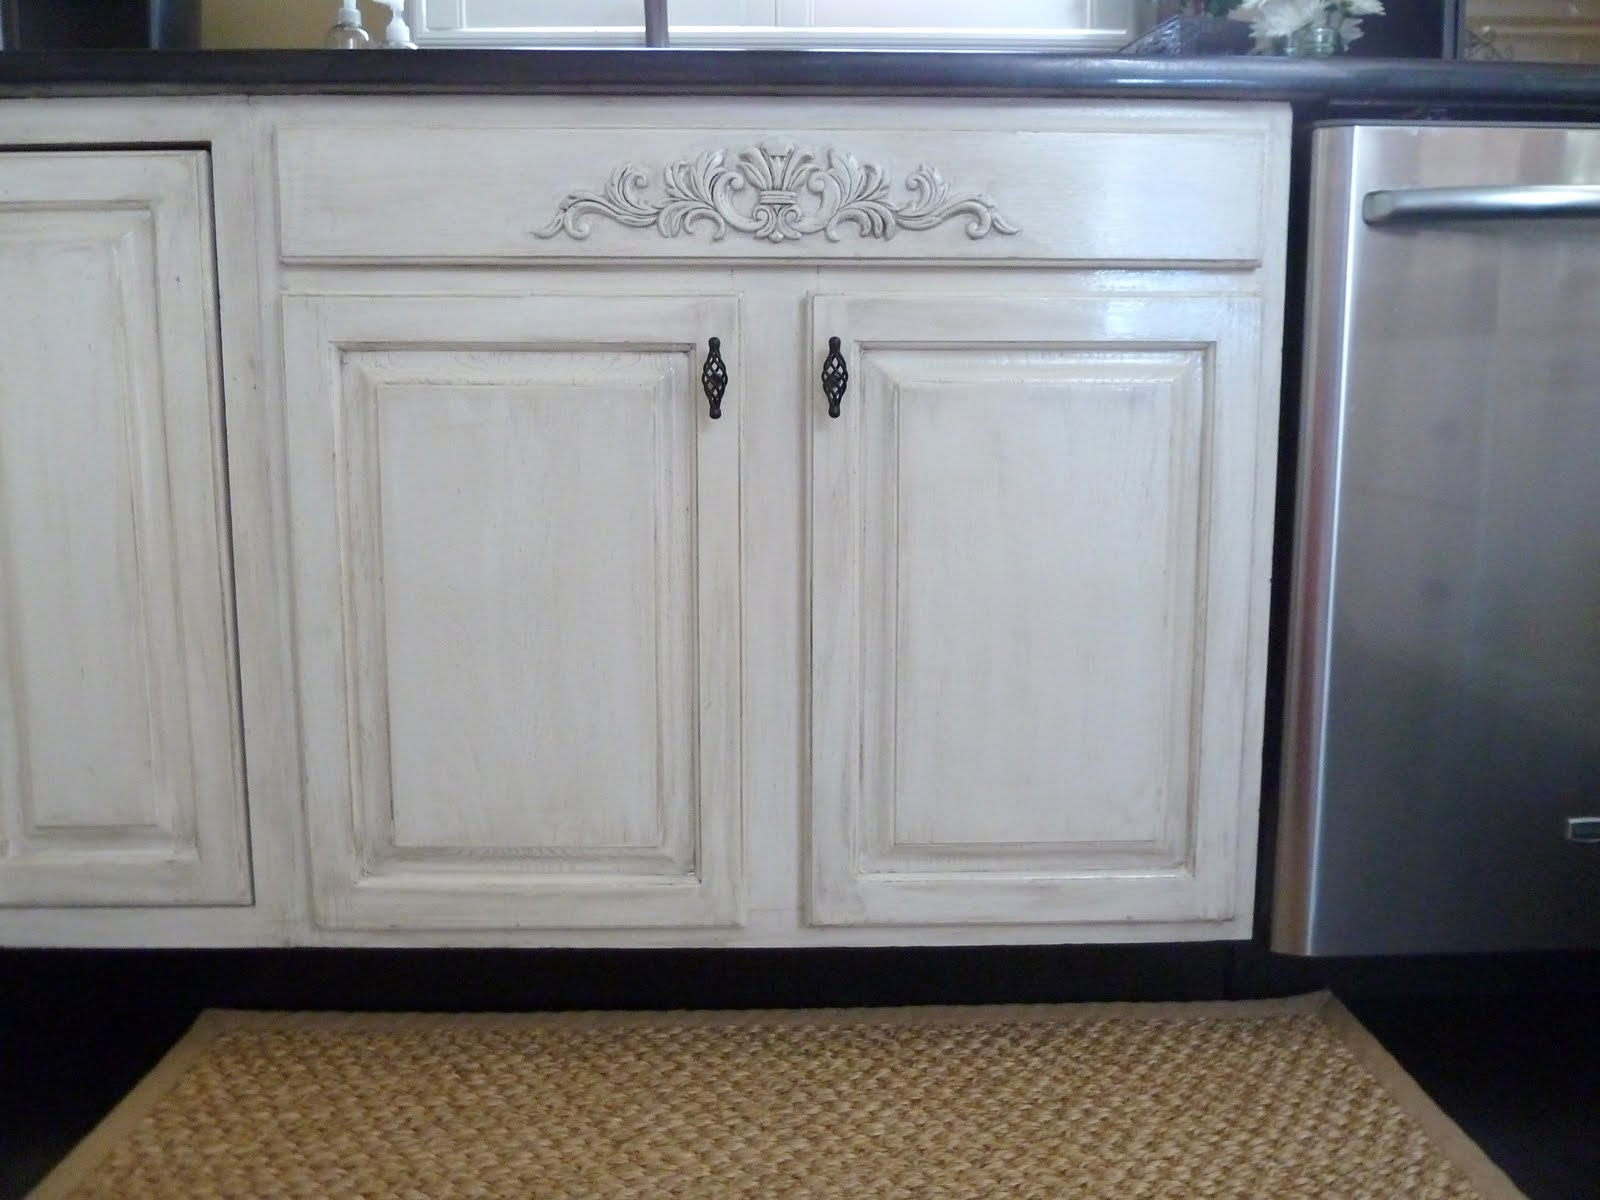 White Kitchen Cabinet Doors distressed kitchen cabinets: how to distress your kitchen cabinets